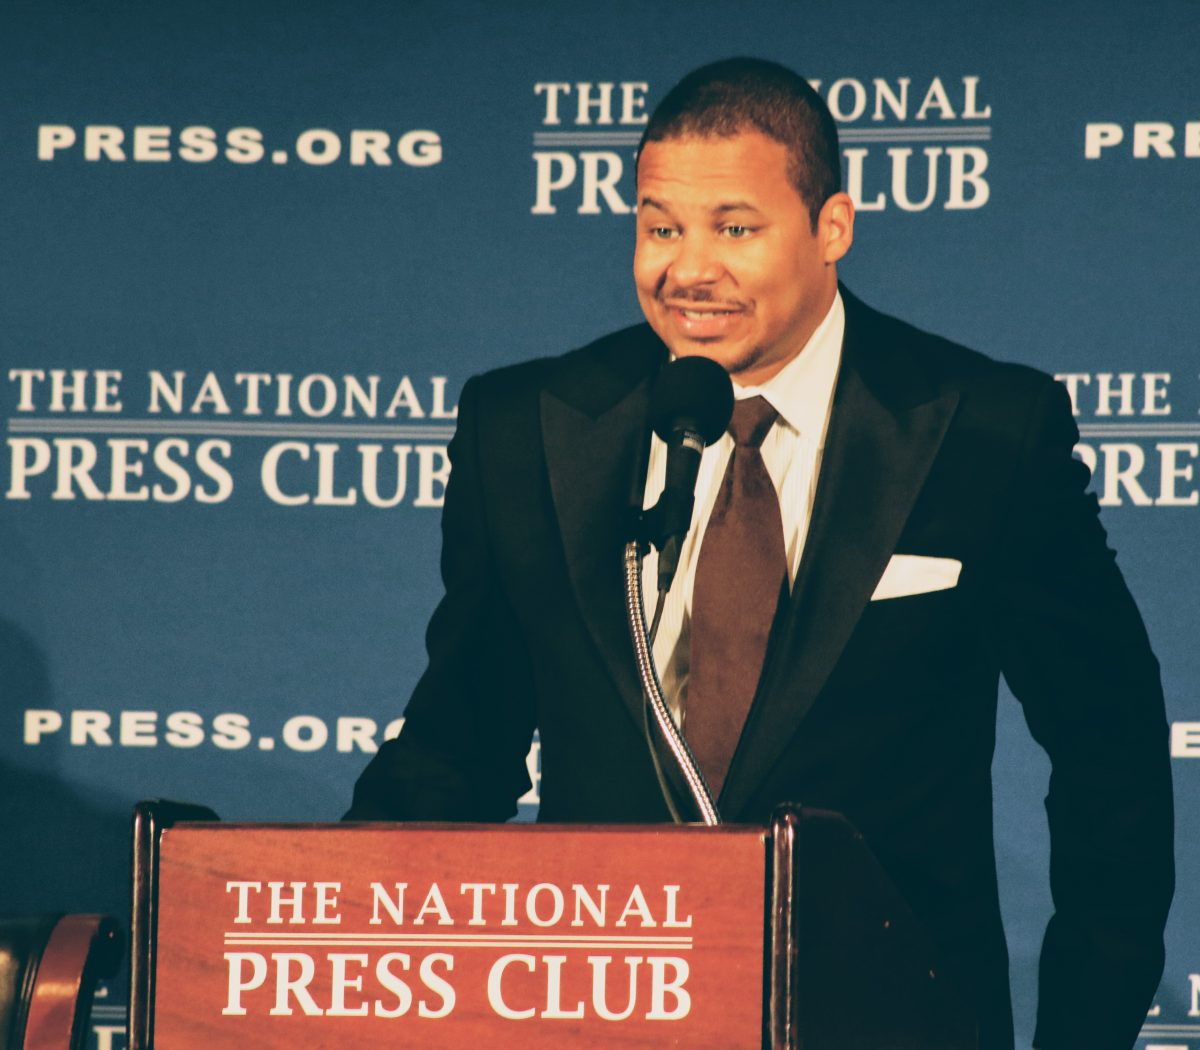 Matthew Watley, executive pastor at Reid Temple AME Church in Prince George's County gives the invocation at the gala for the inauguration of Jeffrey Ballou as the 110th President of the National Press Club in northwest on Saturday, Jan. 14. /Photo by Shevry Lassiter